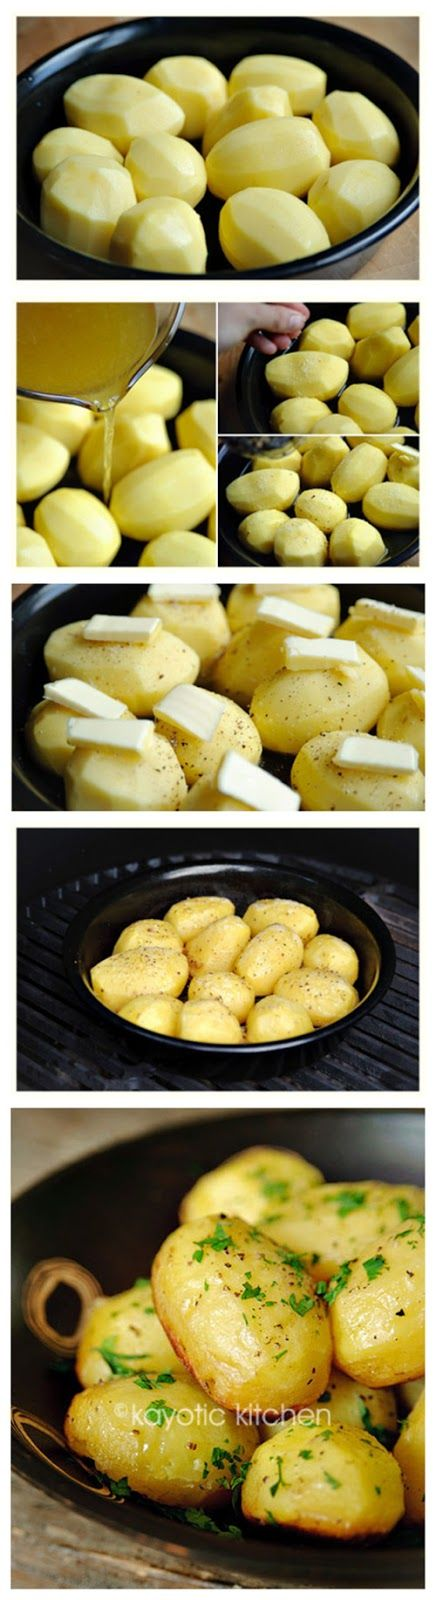 Fall is the best time to cook on the grill, so through some potatoes on there for BBQ potatoes! #recipe #grill #fall